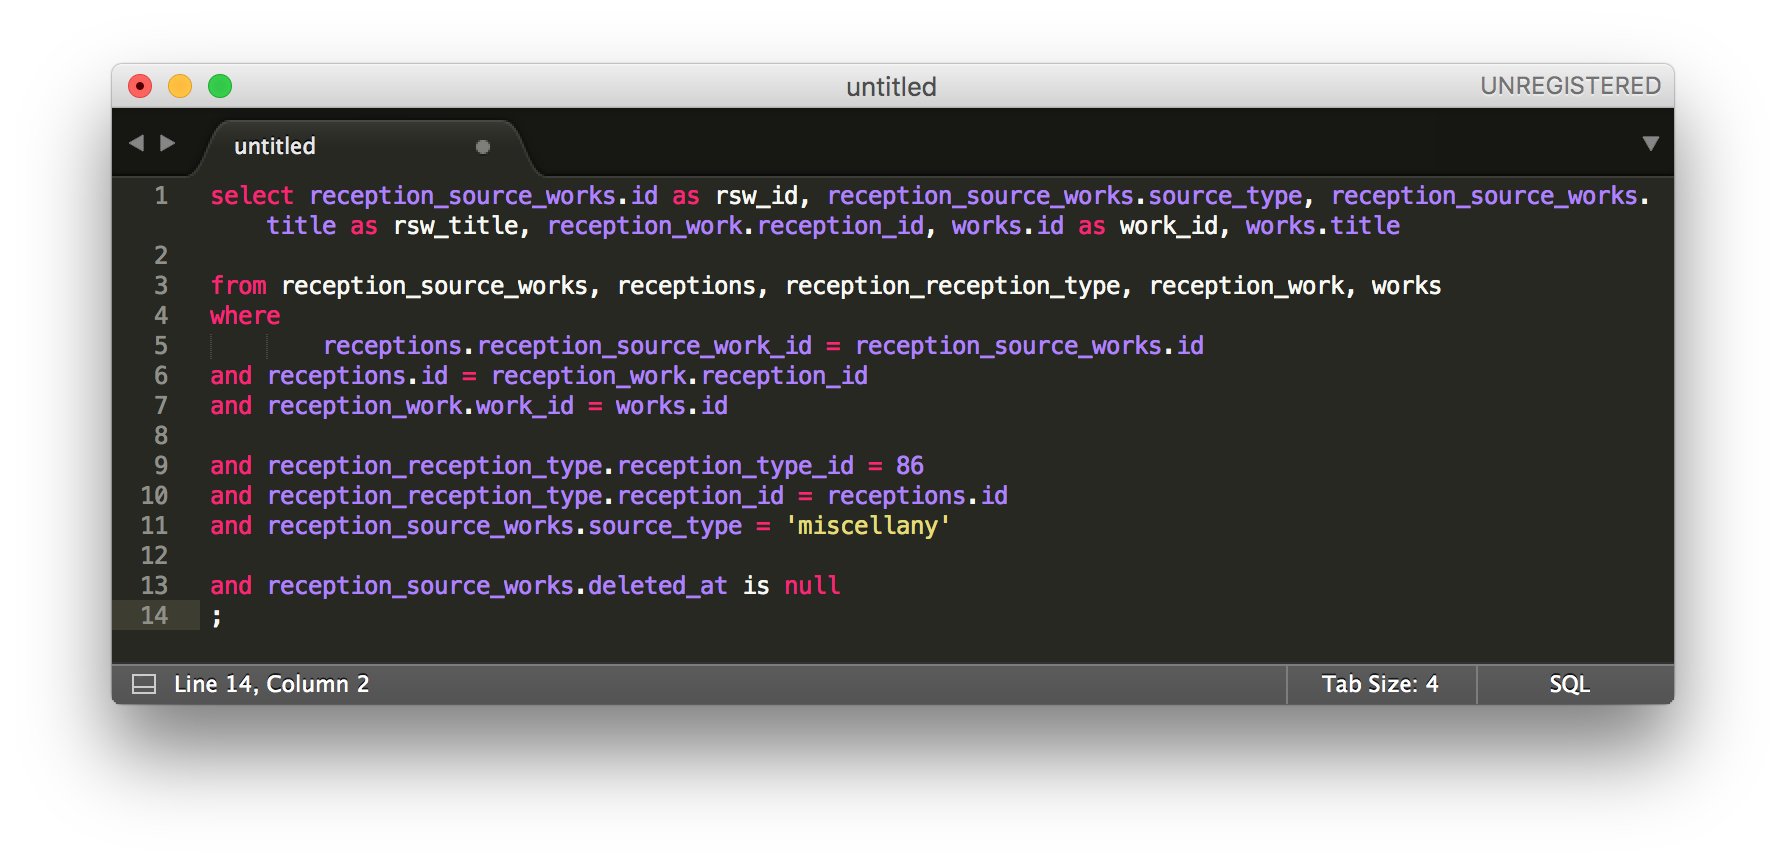 Screenshot of SQL query in Sublime Text